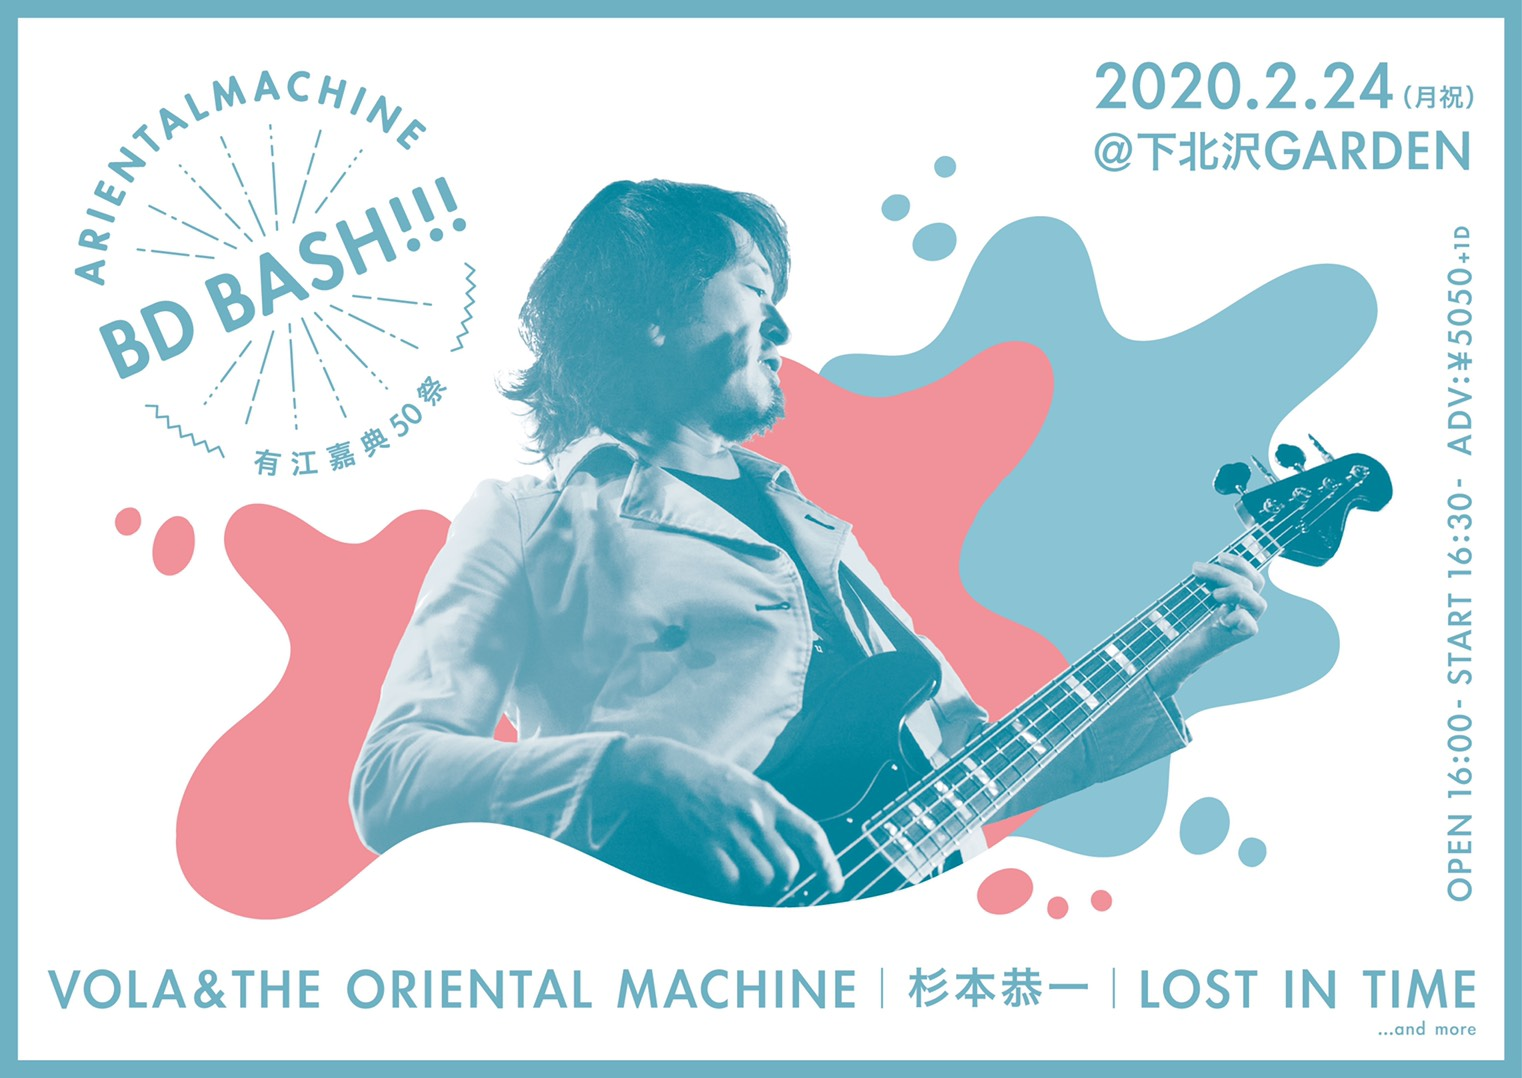 『Arientalmachine BD Bash!!! -有江嘉典50祭-』